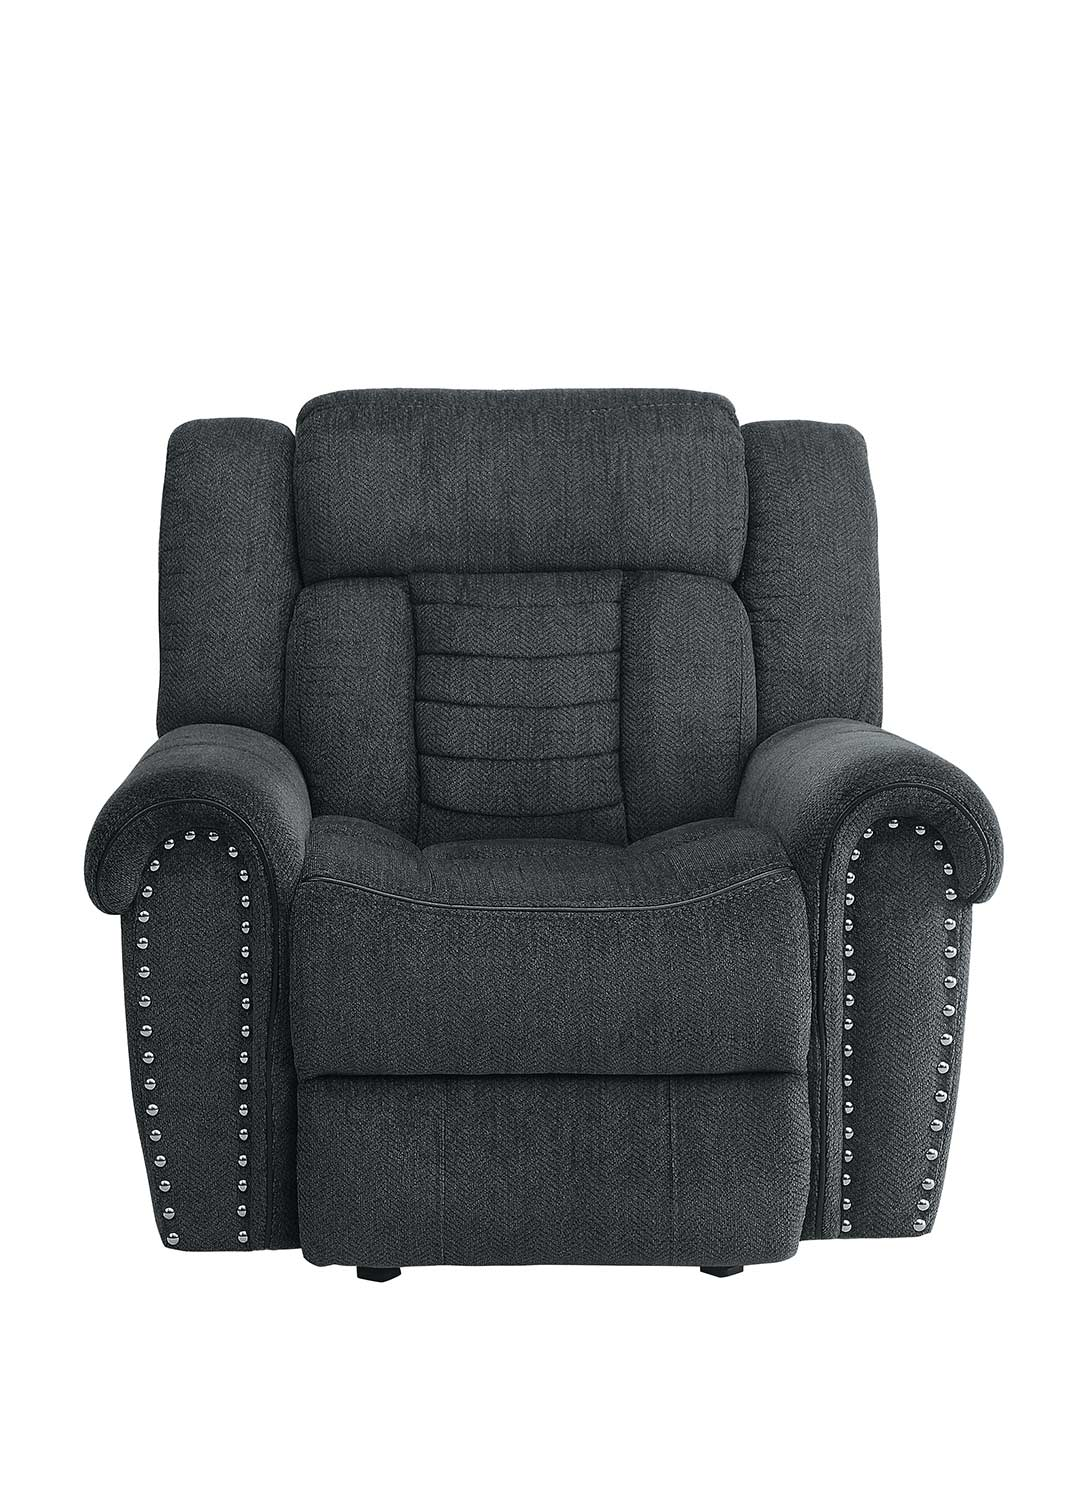 Homelegance Nutmeg Glider Reclining Chair - Charcoal Gray